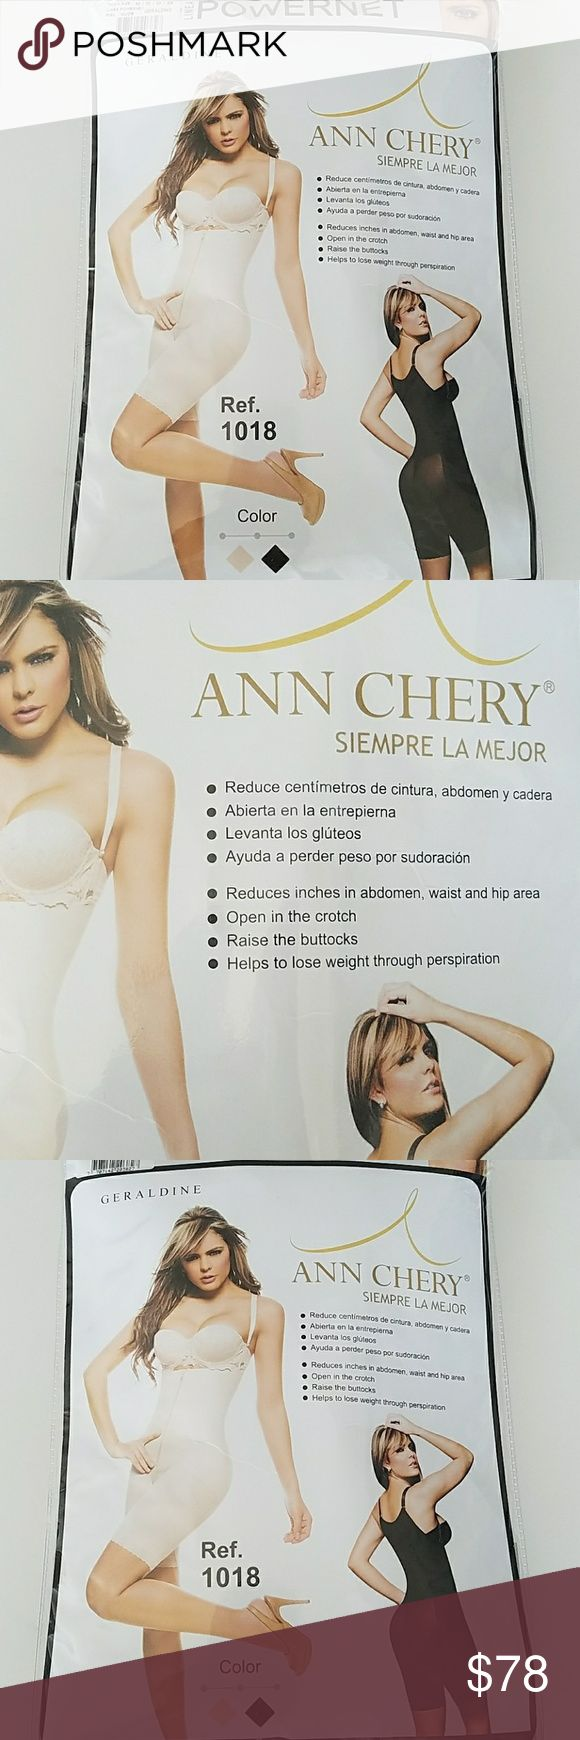 Ann Chery 1018 Geraldine Faja M NEW RETAIL$ $108  Ann chery Mid Thigh powernet bodysuit  1018 Geraldine Faja Para Adelgazar Women Compression Shaper Size M Color Nude  For waist  29 30    Ideal use for Post Surgery Post partum or simple a smooth/slim  silute. Visibly reduced waistlineSlims hips, waist, abdomen, back, and legs Enhances  breasts Enhances buttocks open crotch  ajustable straps Abdominal front  zipper. Ann Chery Intimates & Sleepwear